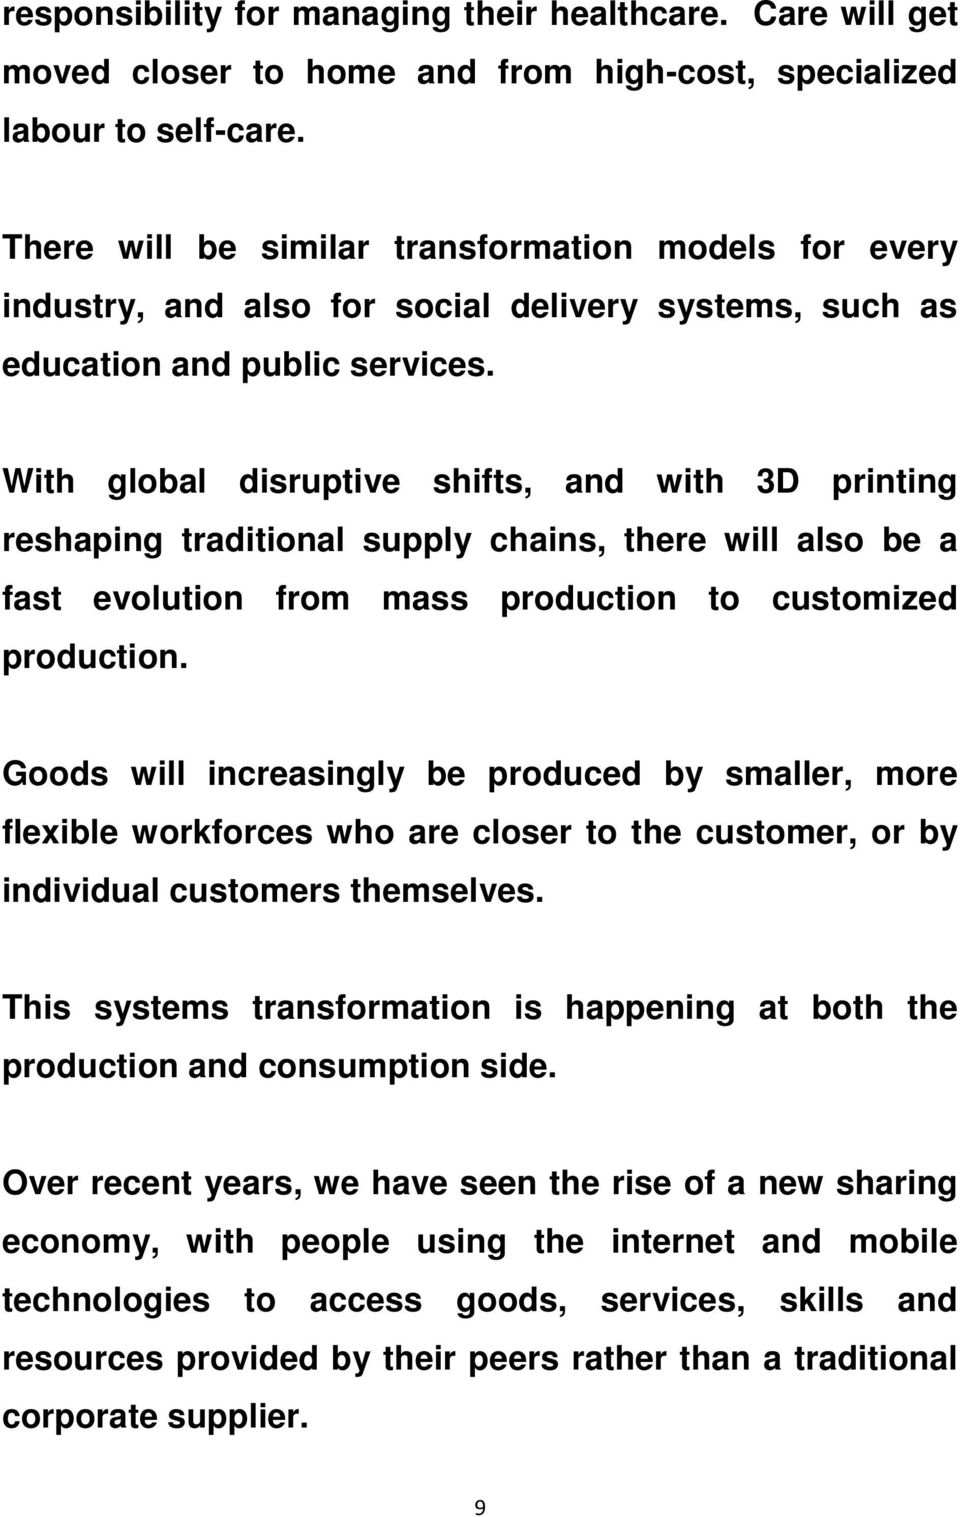 With global disruptive shifts, and with 3D printing reshaping traditional supply chains, there will also be a fast evolution from mass production to customized production.